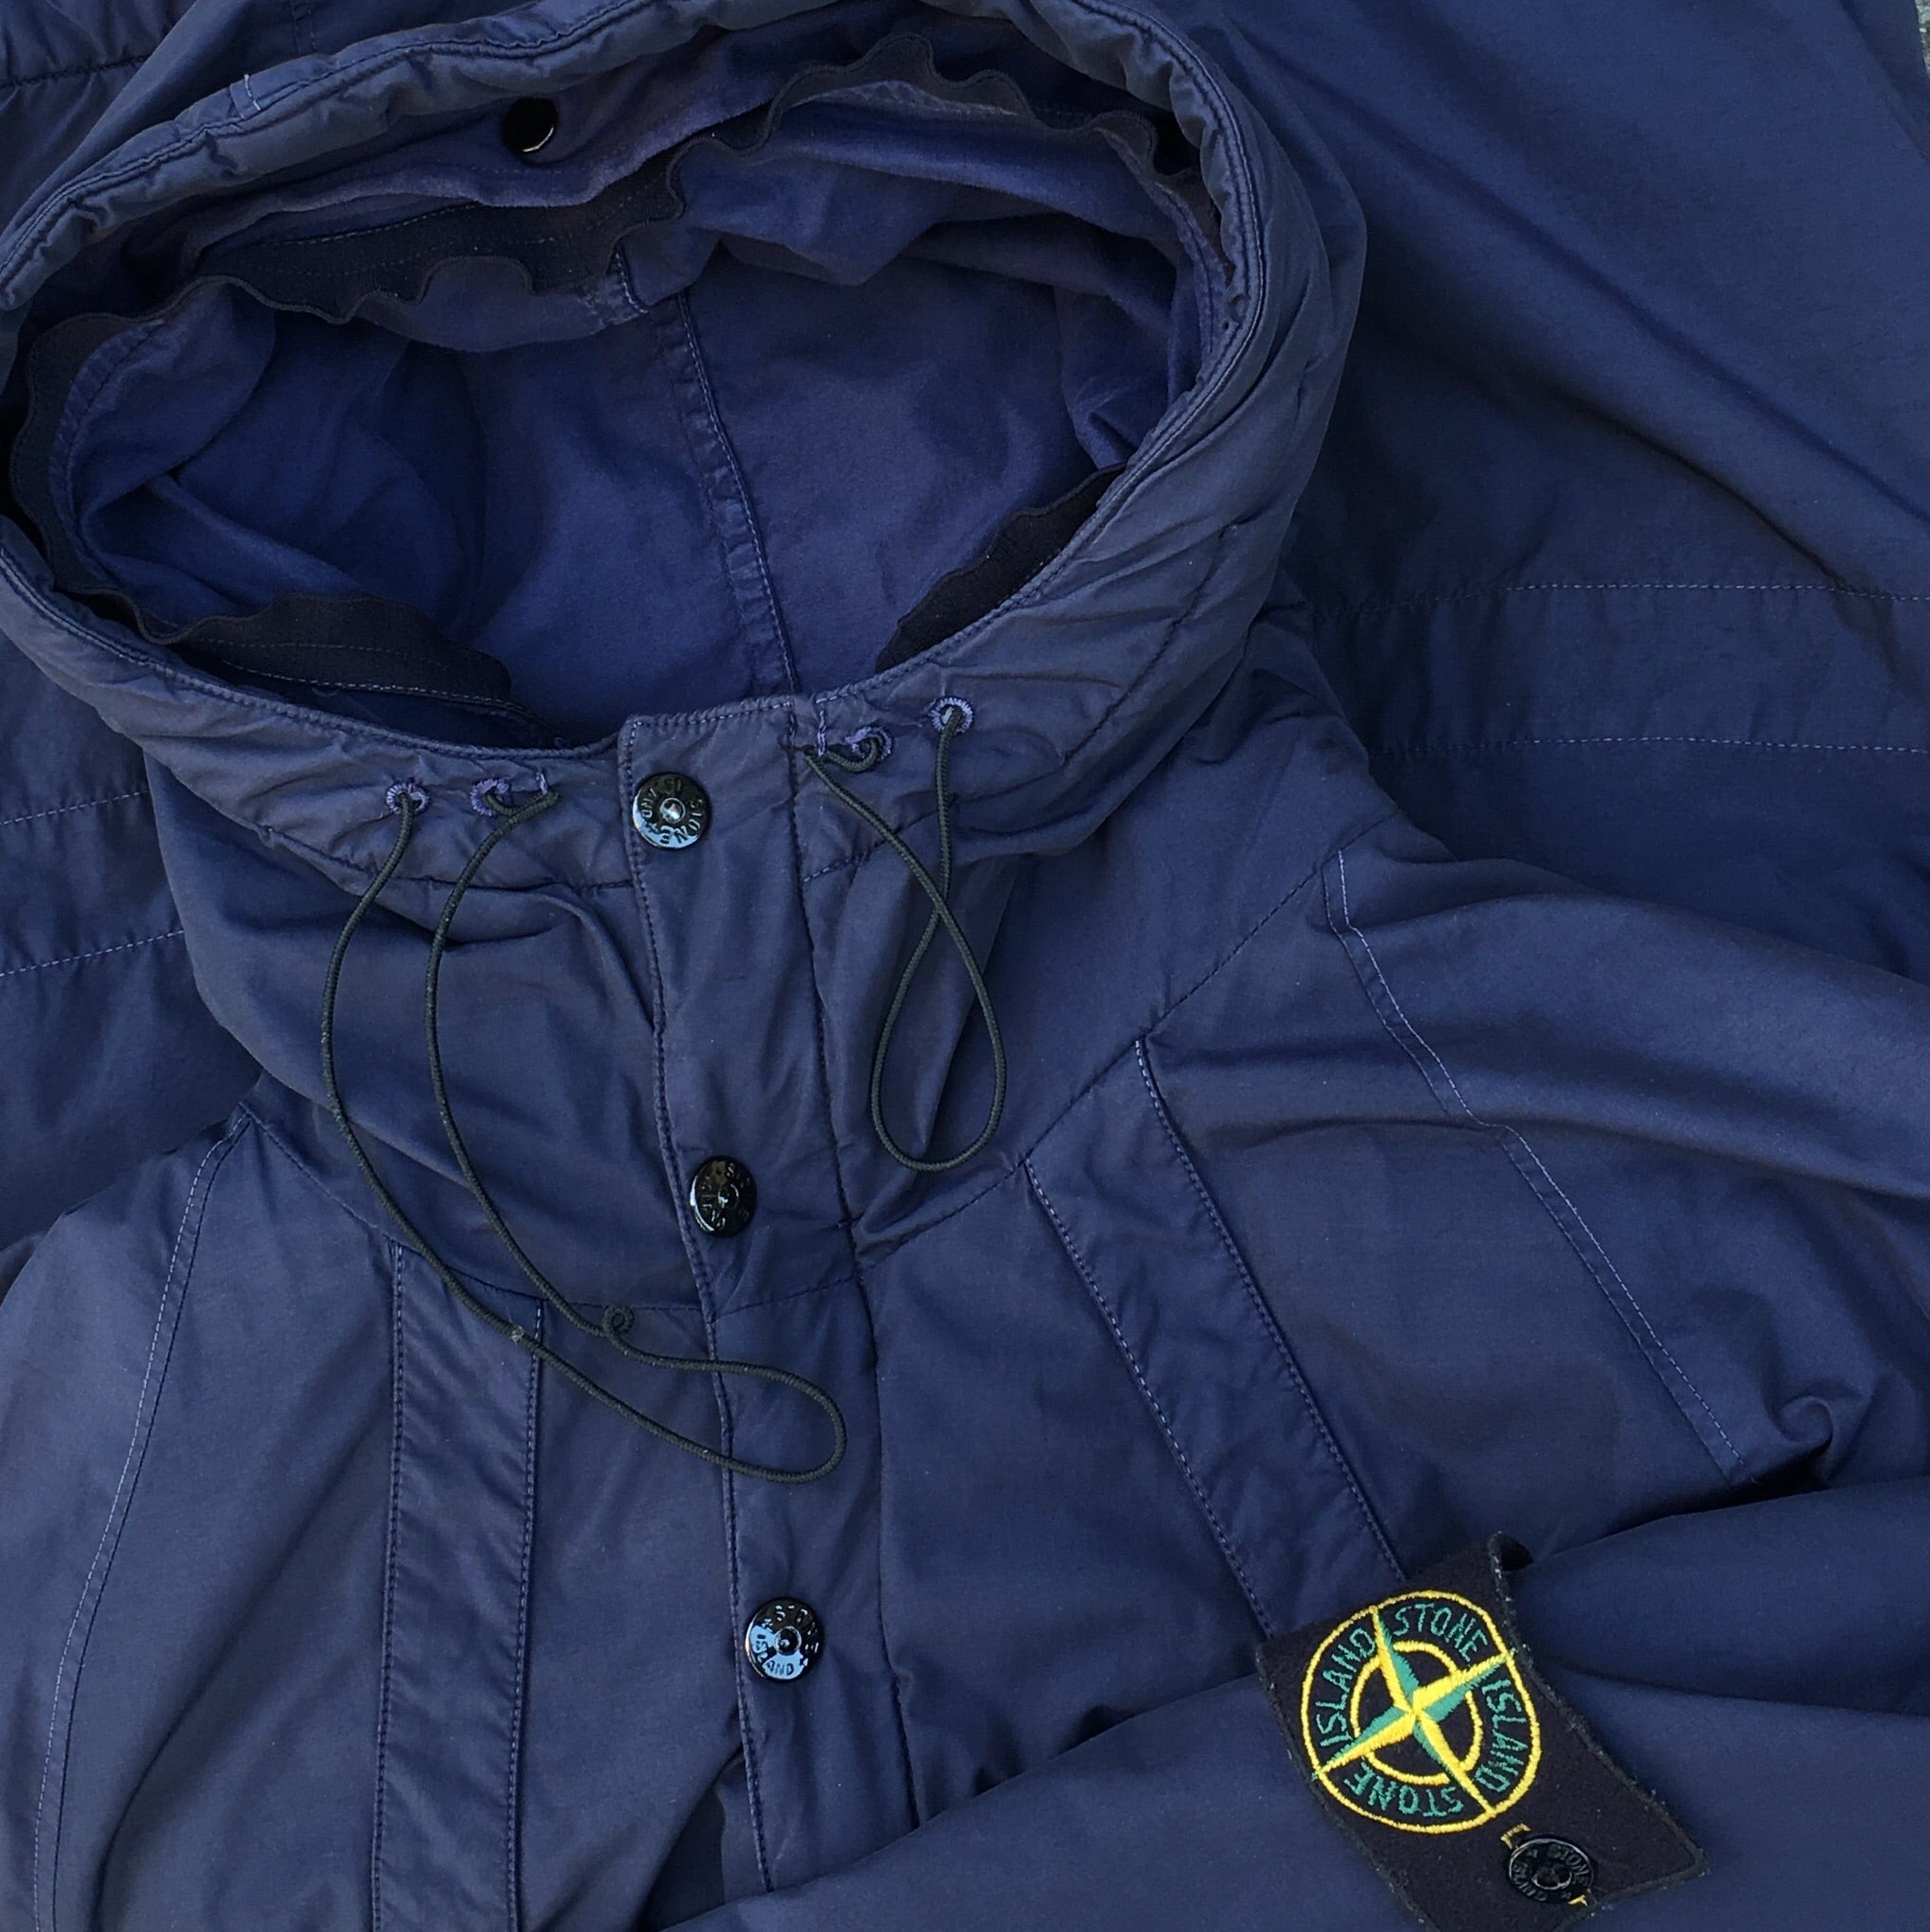 Stone Island AW 2004 Double Hooded Jacket by Paul Harvey